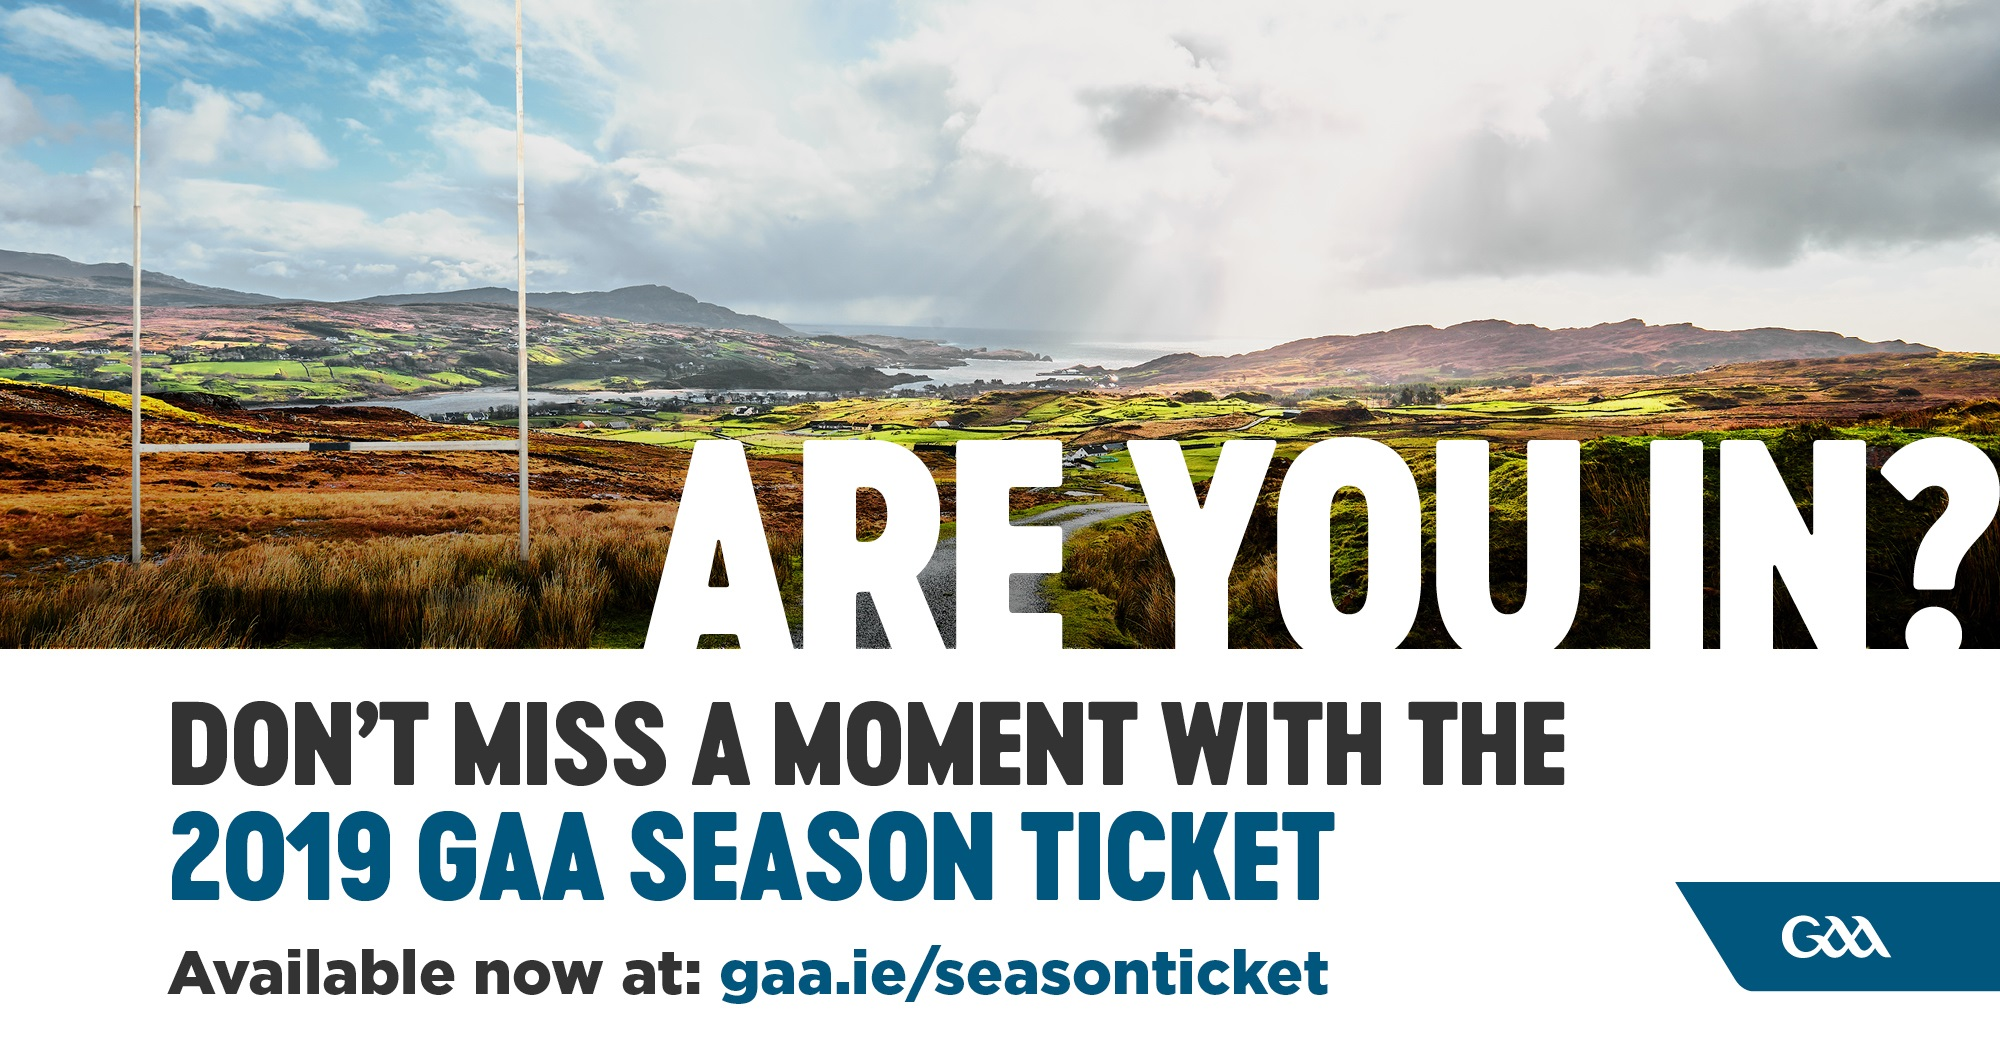 Get your GAA Season Ticket for 2019